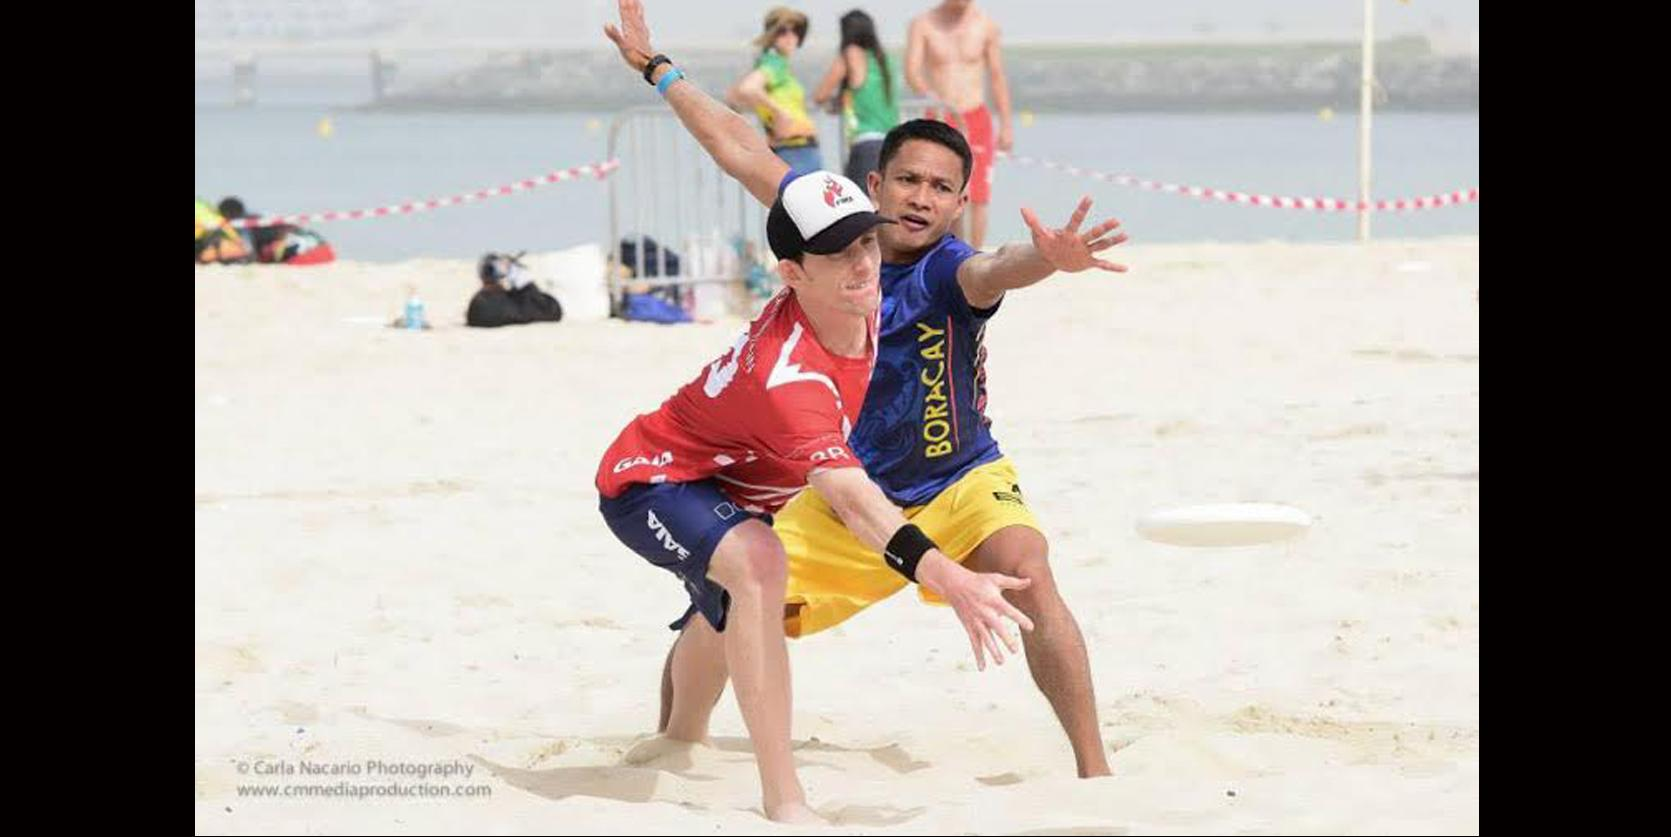 #BoracayDragons bag two bronzes in #WCBU2015  http://t.co/kPKw86FqxL http://t.co/aXO5KvHias <a href='http://twitter.com/KabayanWeeklyAE/status/579268916851056641/photo/1' target='_blank'>See original &raquo;</a>